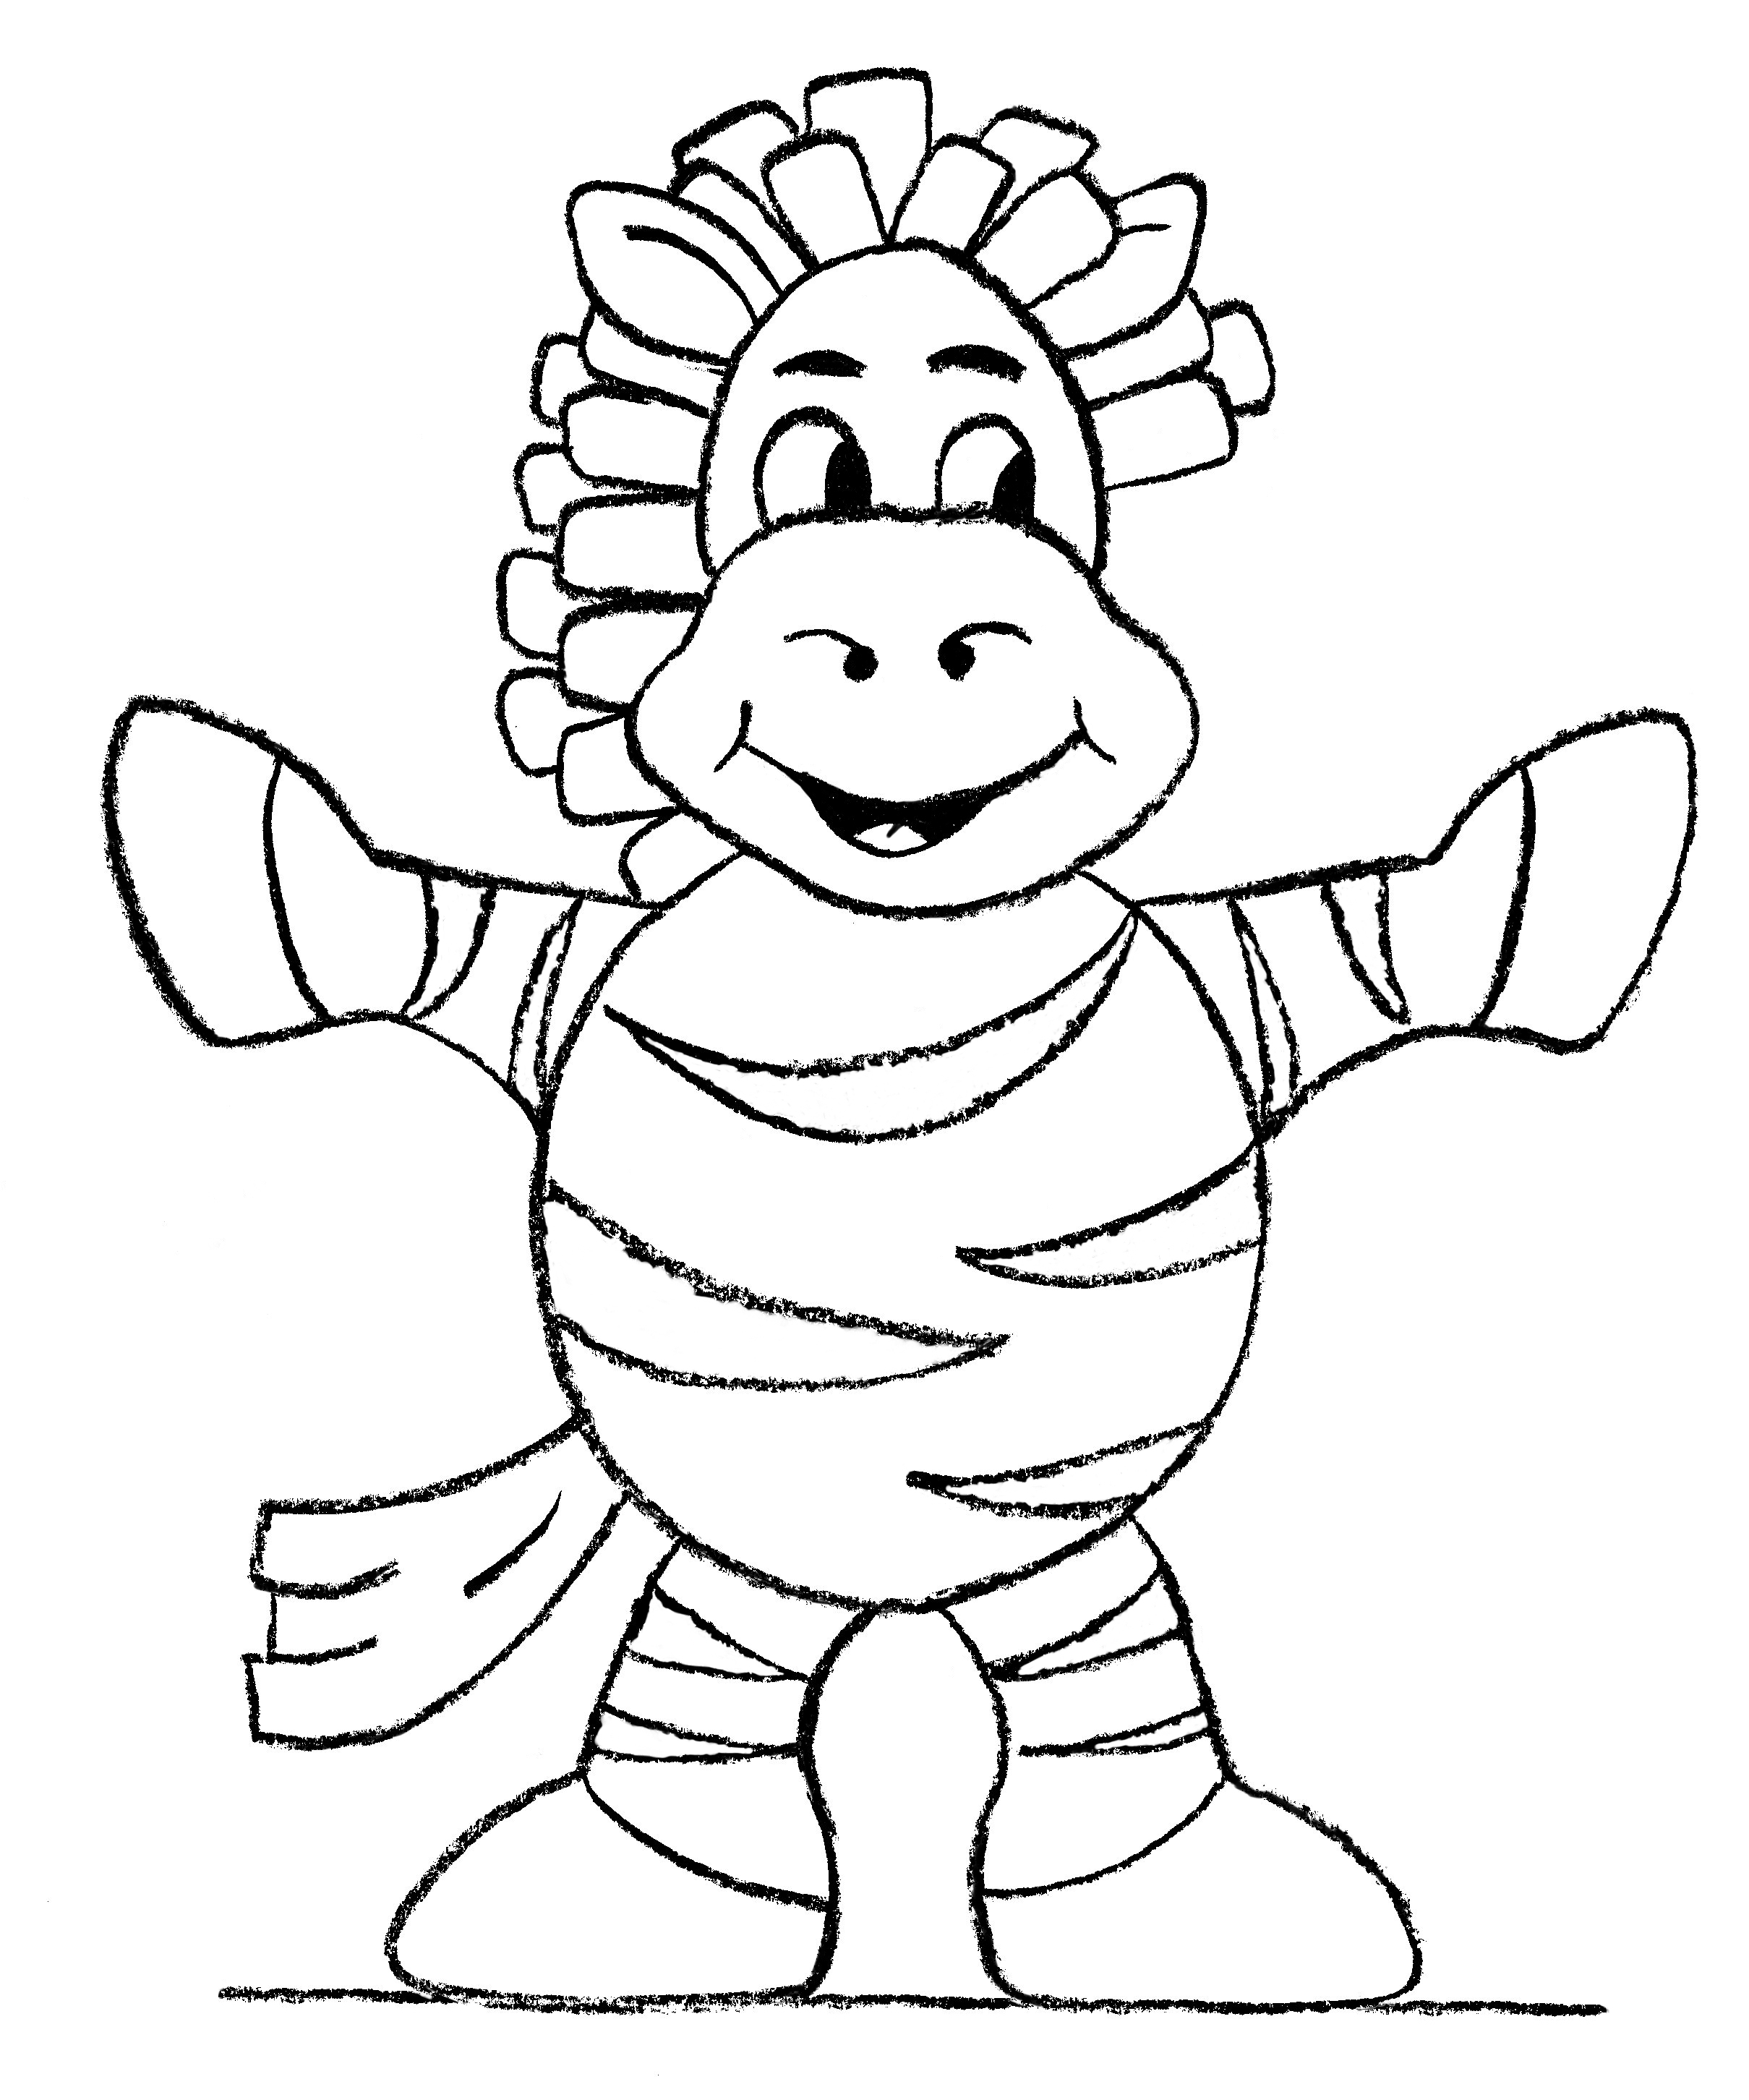 Anansi The Spider Coloring Pages Coloring Pages